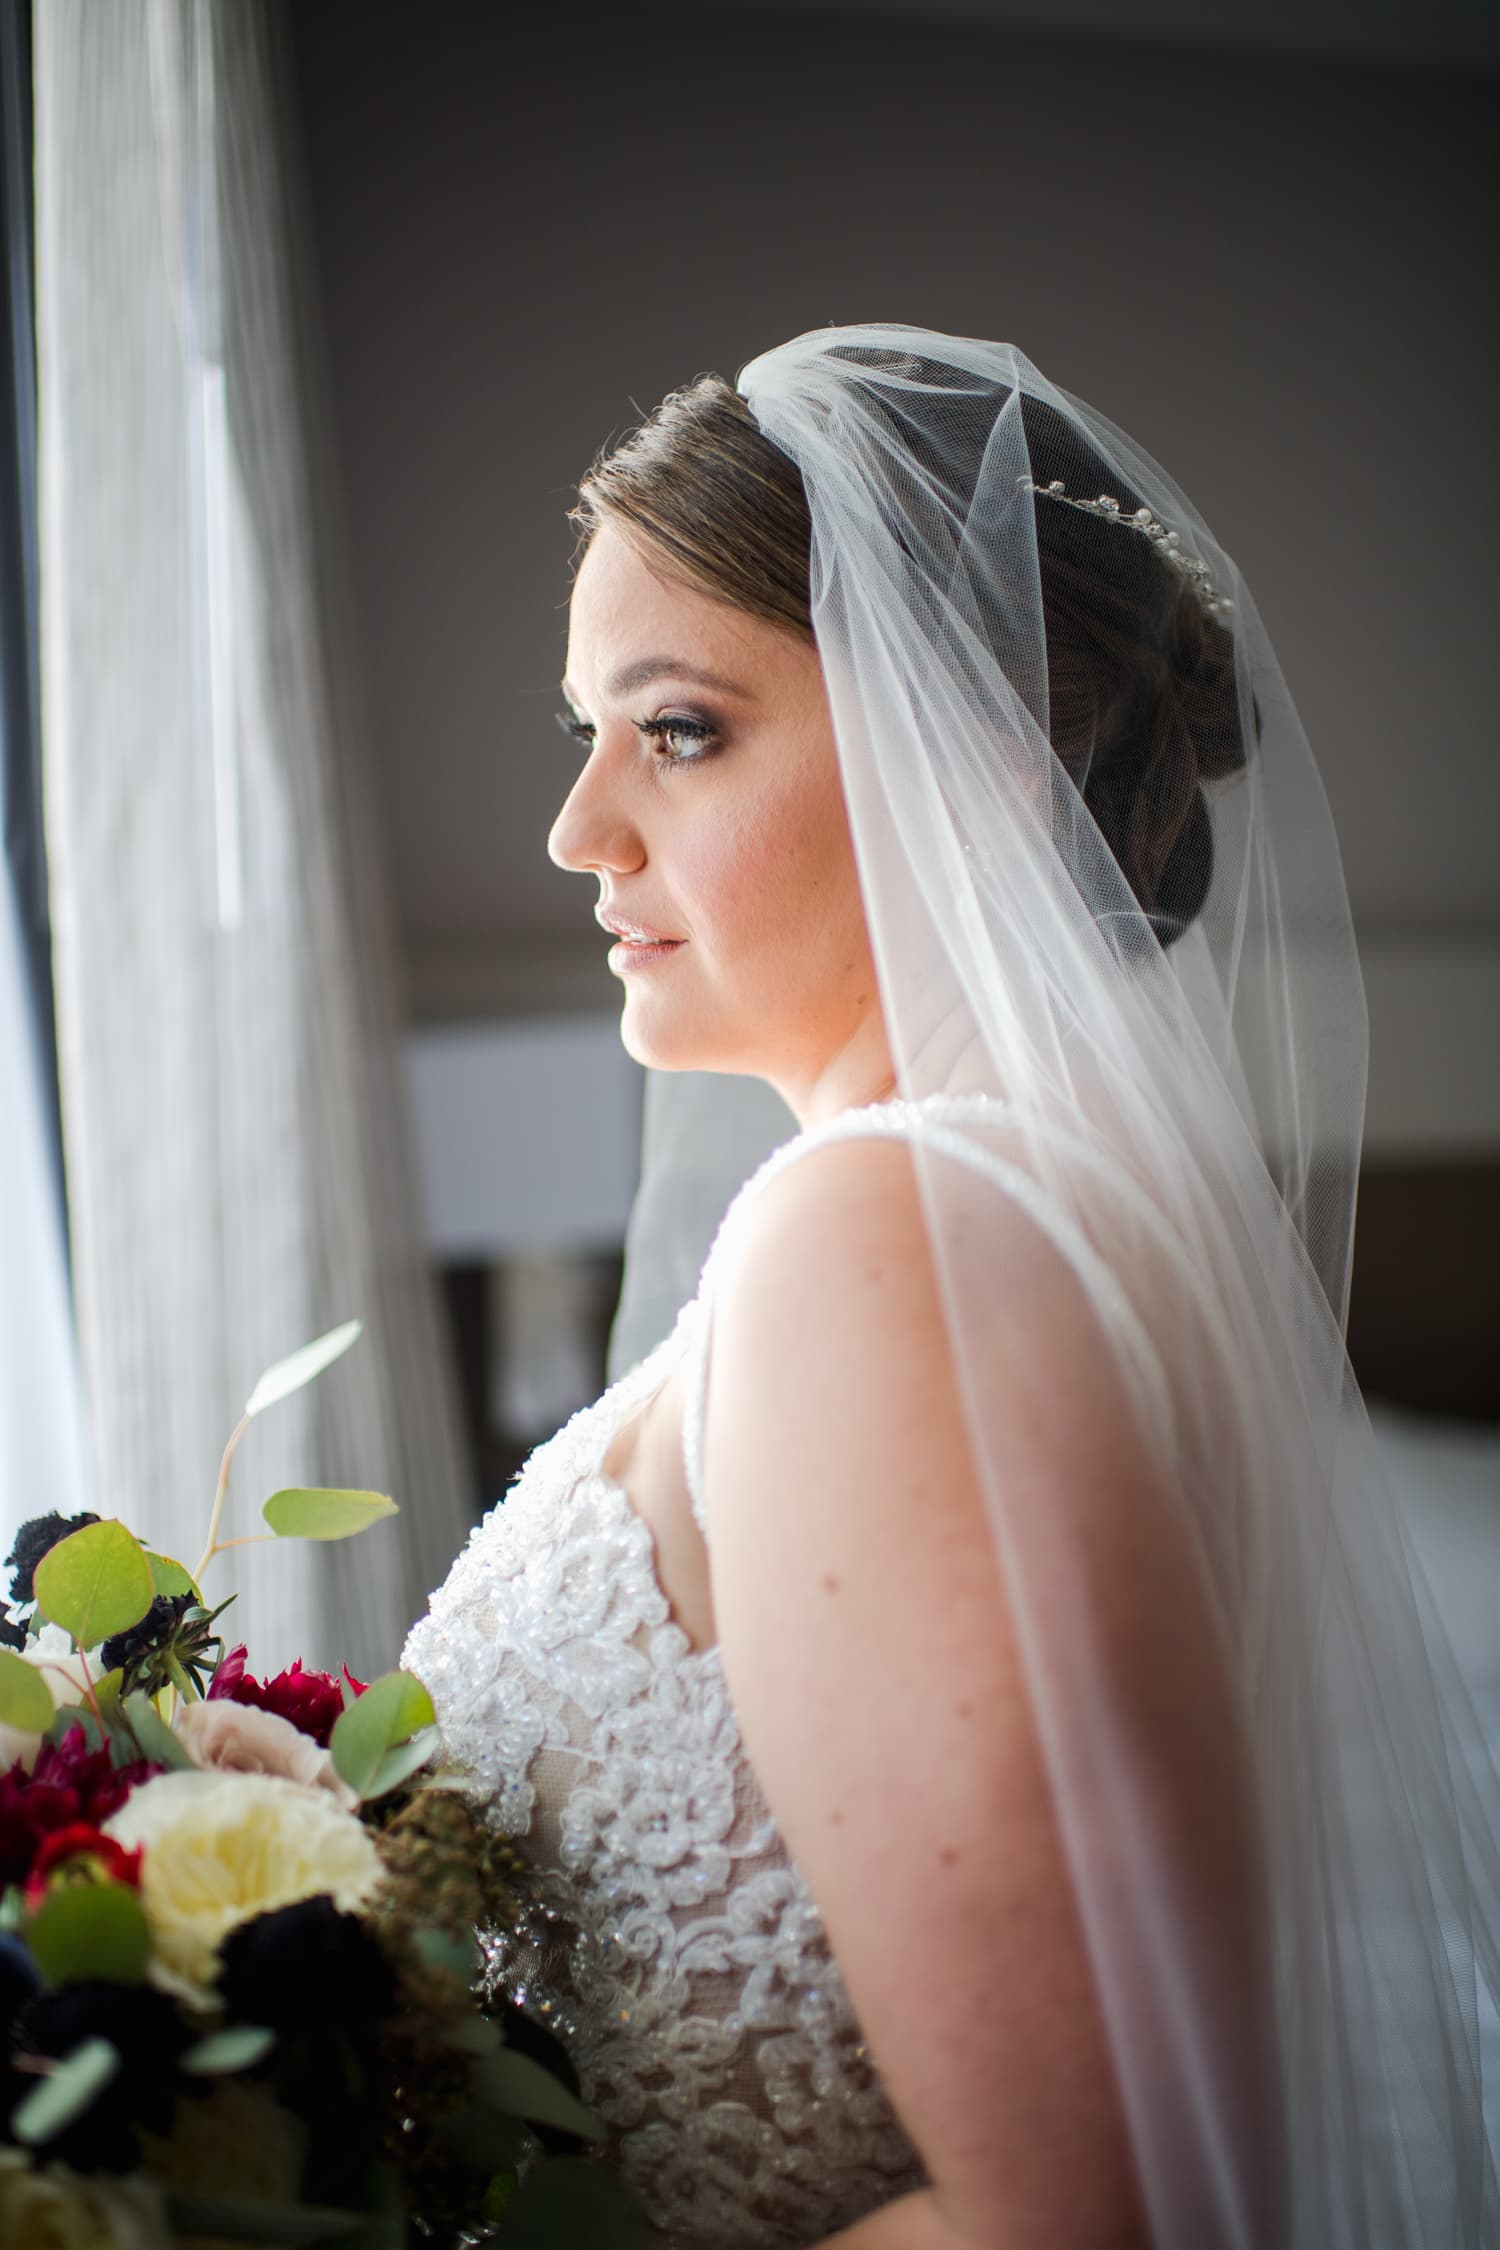 Bridal getting ready at AC Marriott Hotel by Puerto Rico wedding photographer Camille Fontanez